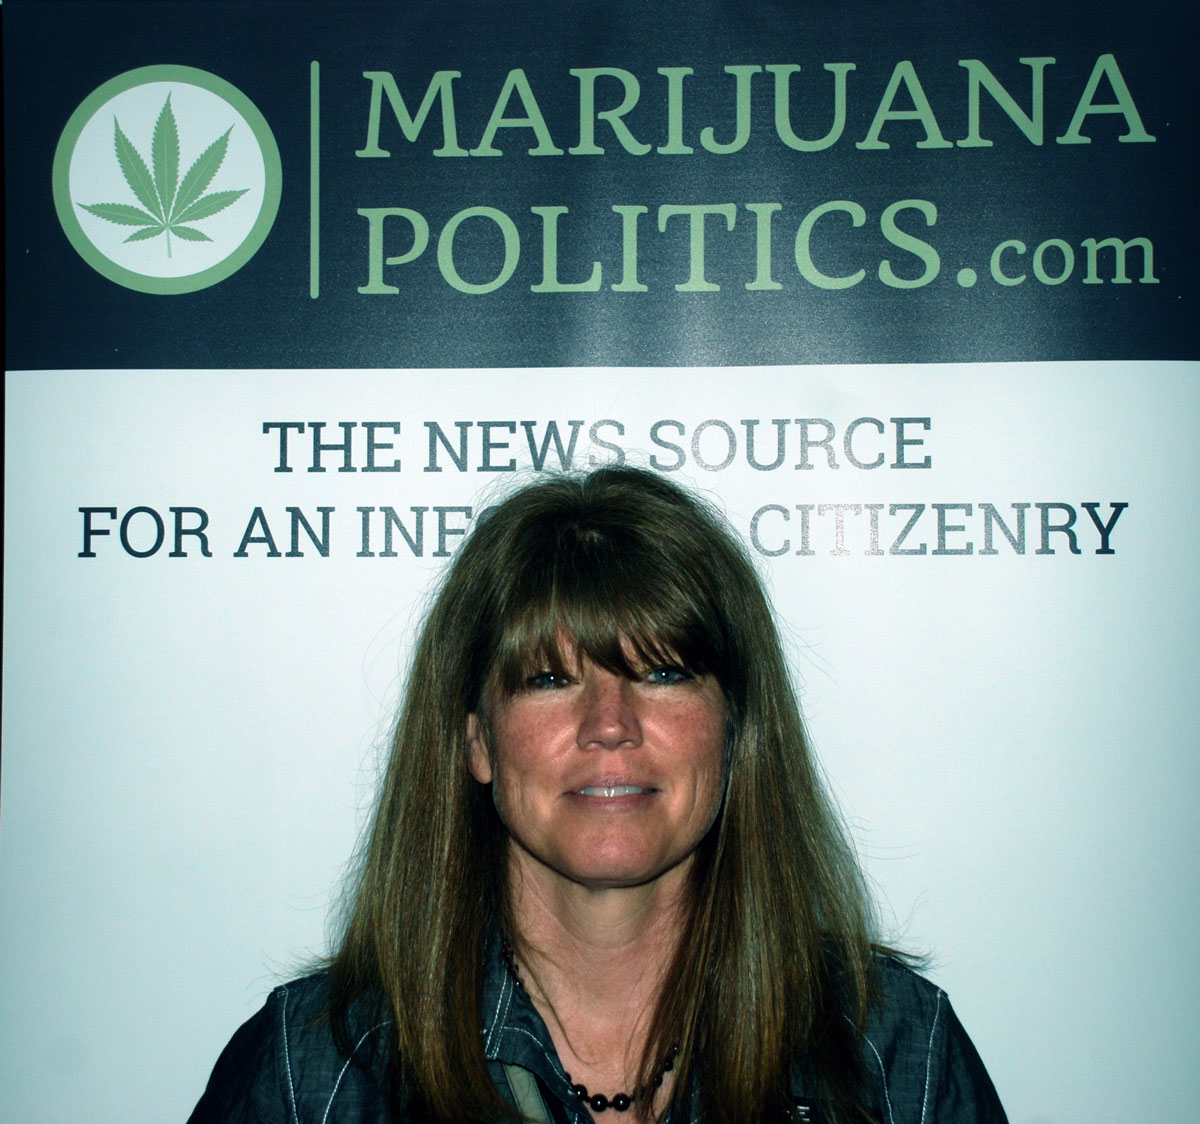 Karen of the CO2 Company stopped by for a talk with us at Marijuana Politics. Interview shall be posted soon. The Southern Oregon based extraction company is dedicated to providing patients with pure, clean cannabis oil. They take the needs of the patients seriously, using organic grow techniques. Learn more at www.theco2company.com.